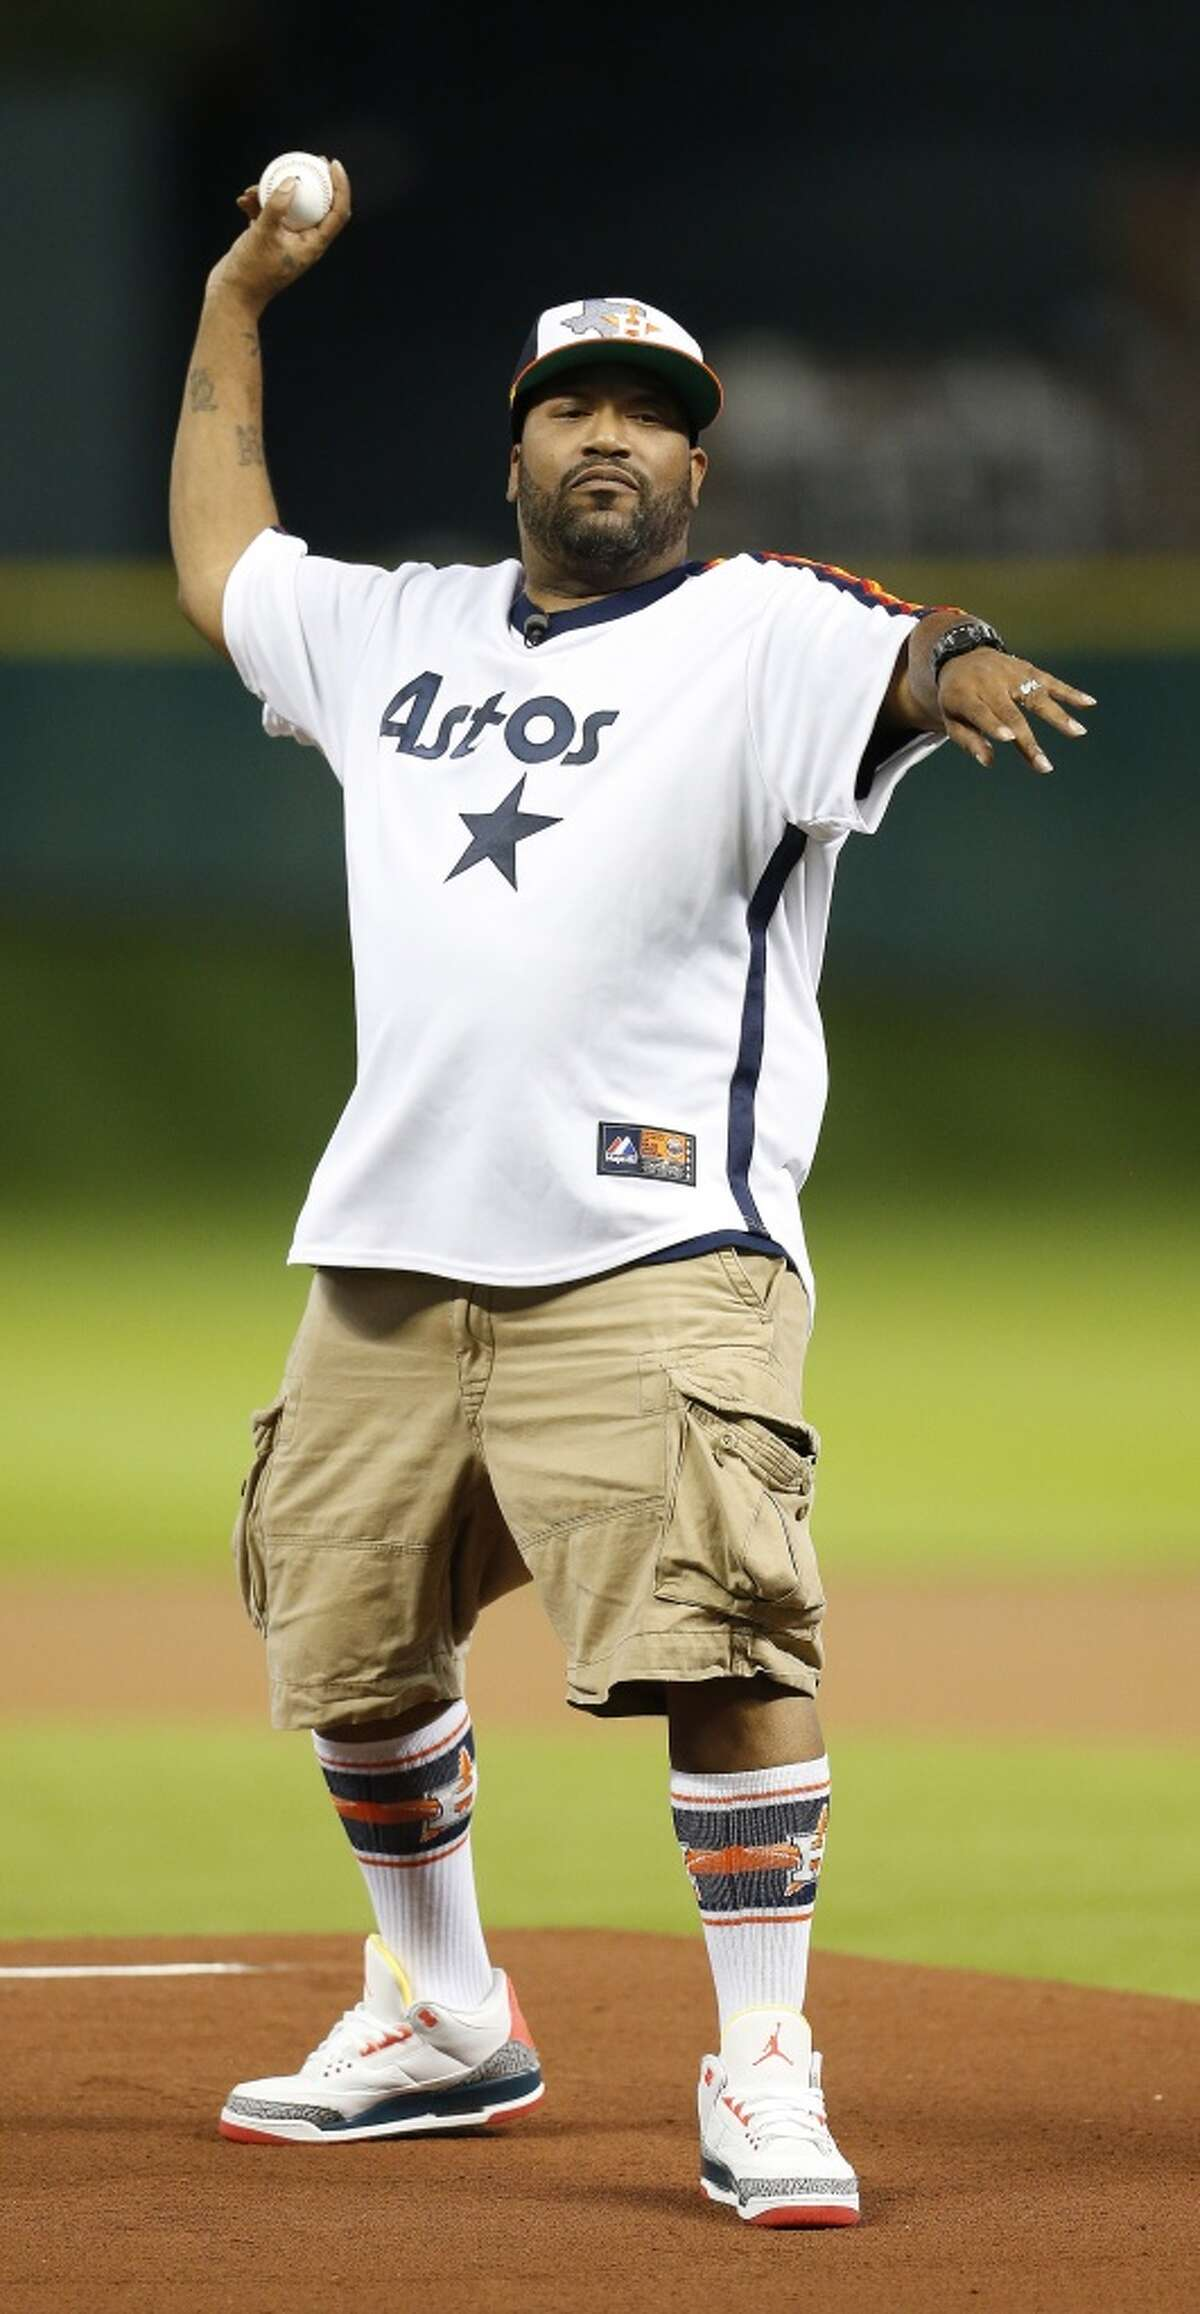 Rapper Bun B threw out the first pitch an Astros game in Sept. 2014.